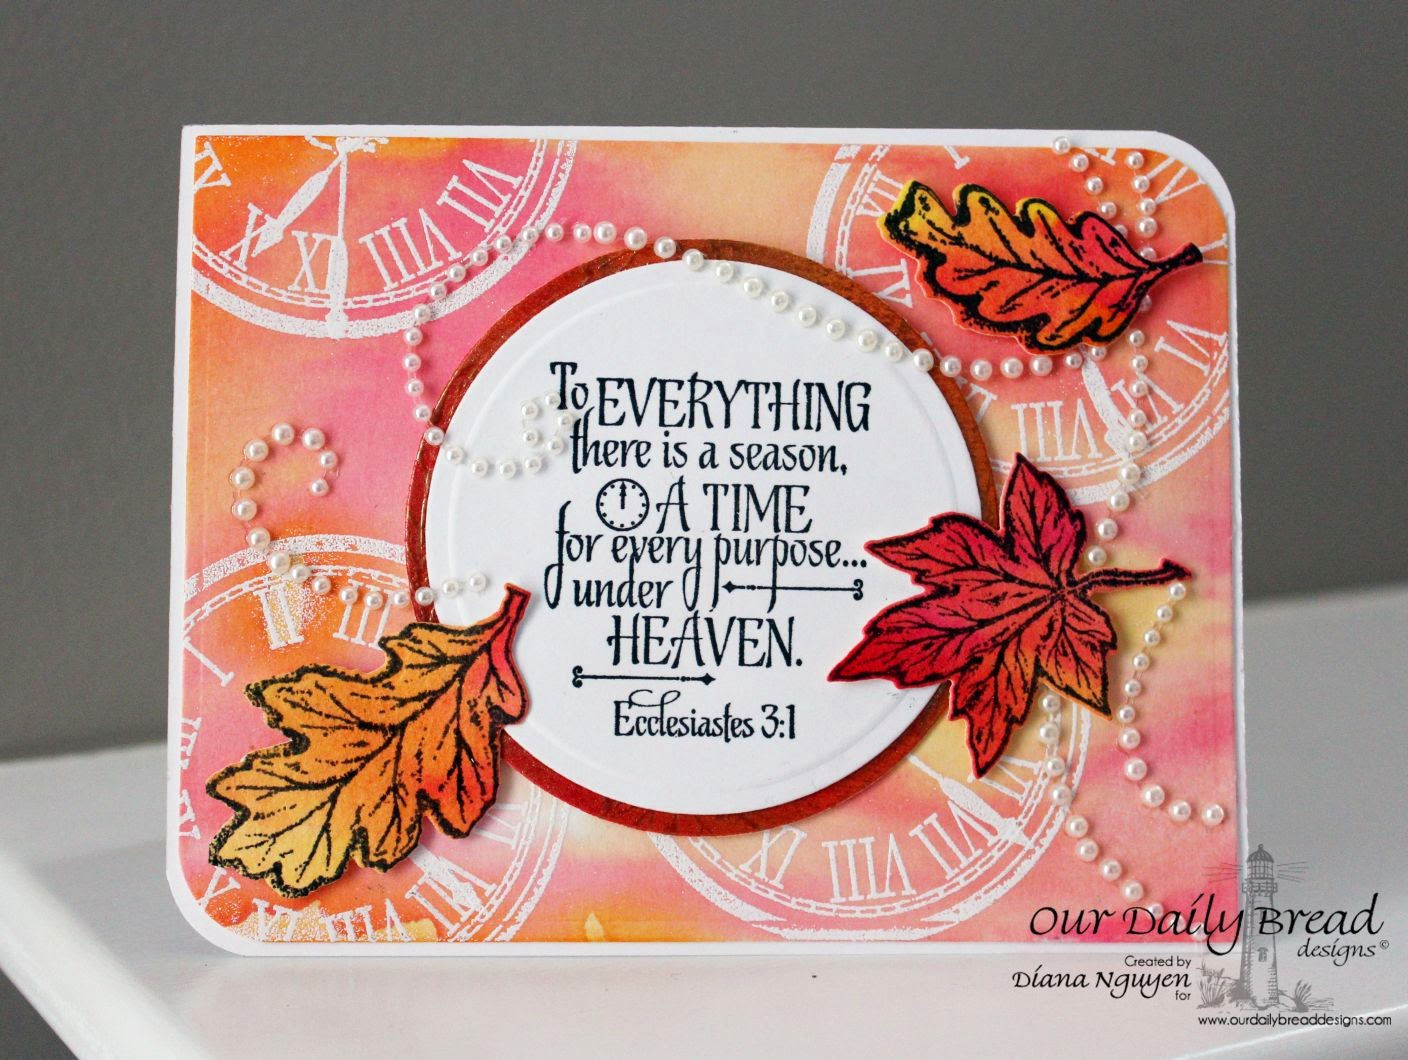 Our Daily Bread Designs, ODBDSLC216, God's Timing, Autumn Blessings, Matting Circles Dies, Fall Leaves and Acorns Dies, Designed by Diana Nguyen